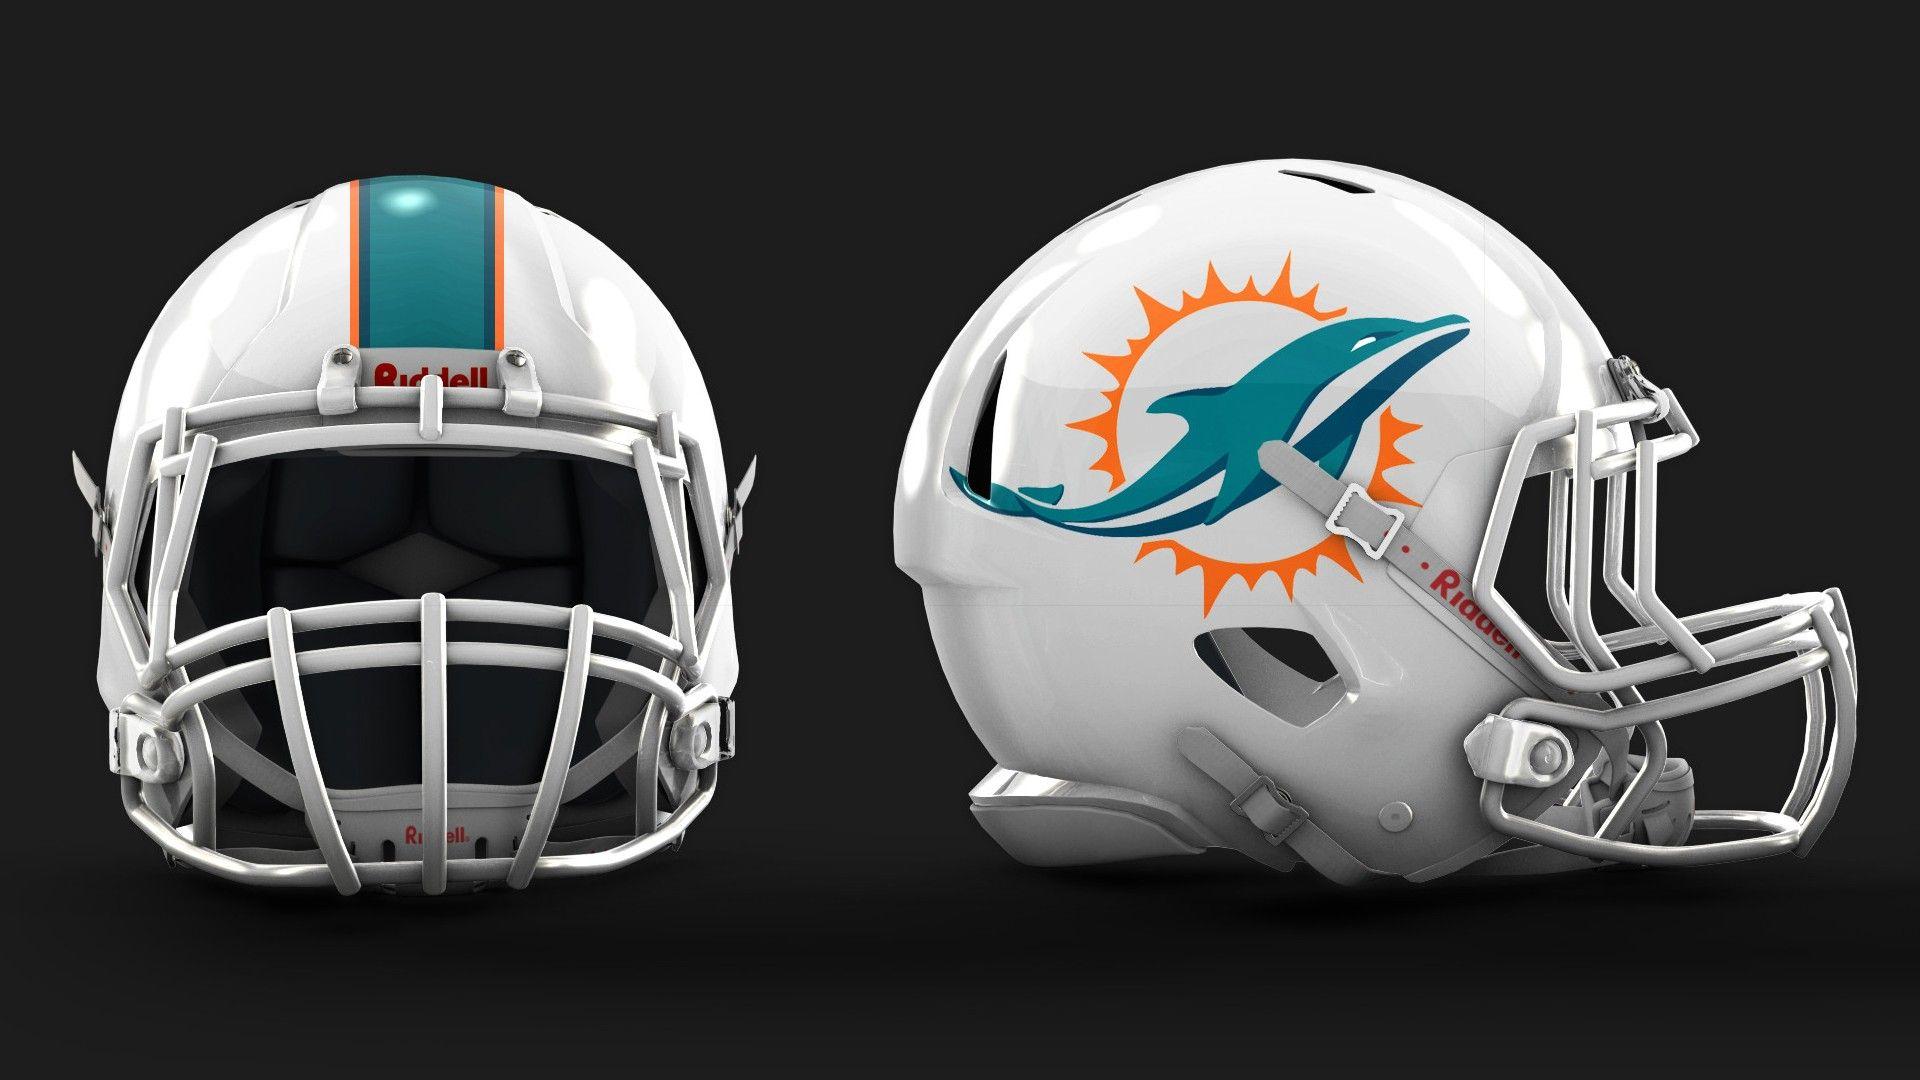 Miami dolphins new logo miami dolphins helmet new logo wallpaper miami dolphins new logo miami dolphins helmet new logo wallpaper with 1920x1080 resolution voltagebd